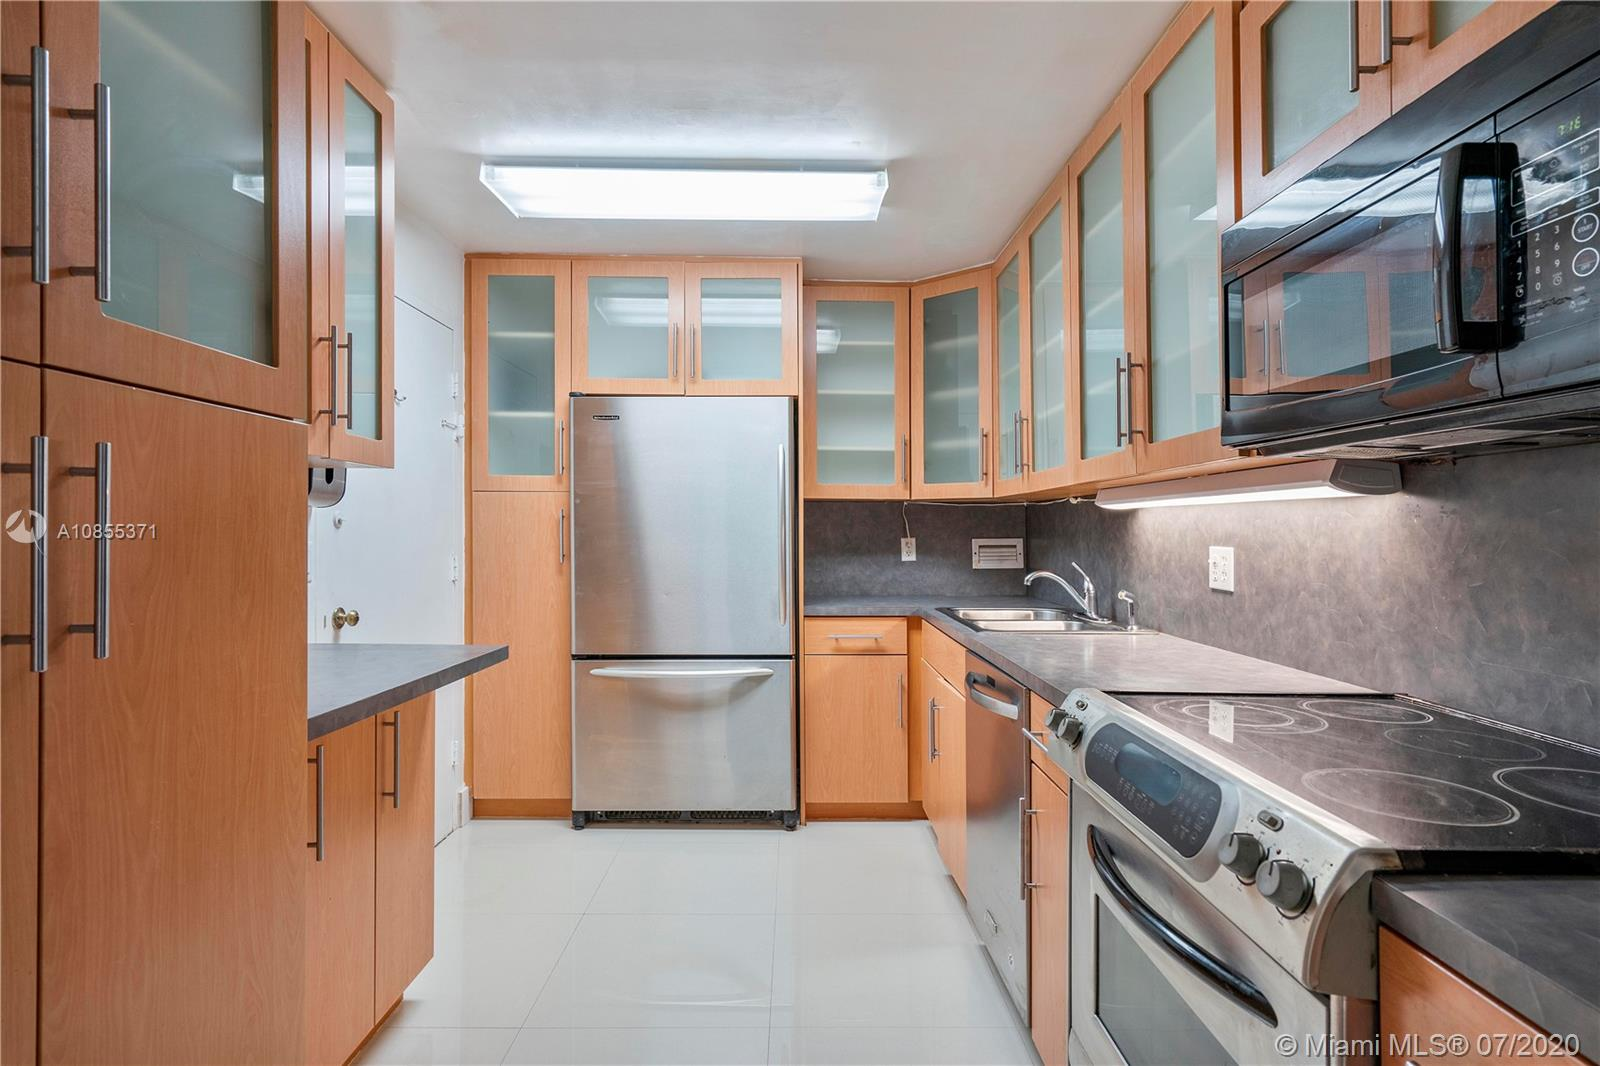 Nice and spacious Two bedroom and two bathroom corner unit. Located at the beautiful Bay harbor Island. Walking distances to an A+ elementary and middle school. Close to the beaches, restaurnats and shops. Big balcony, tiles floors, nice kitchen with steinless steel appliances. Buidling offers, gym, pool and billiard room. Unit can be rent it after two years.